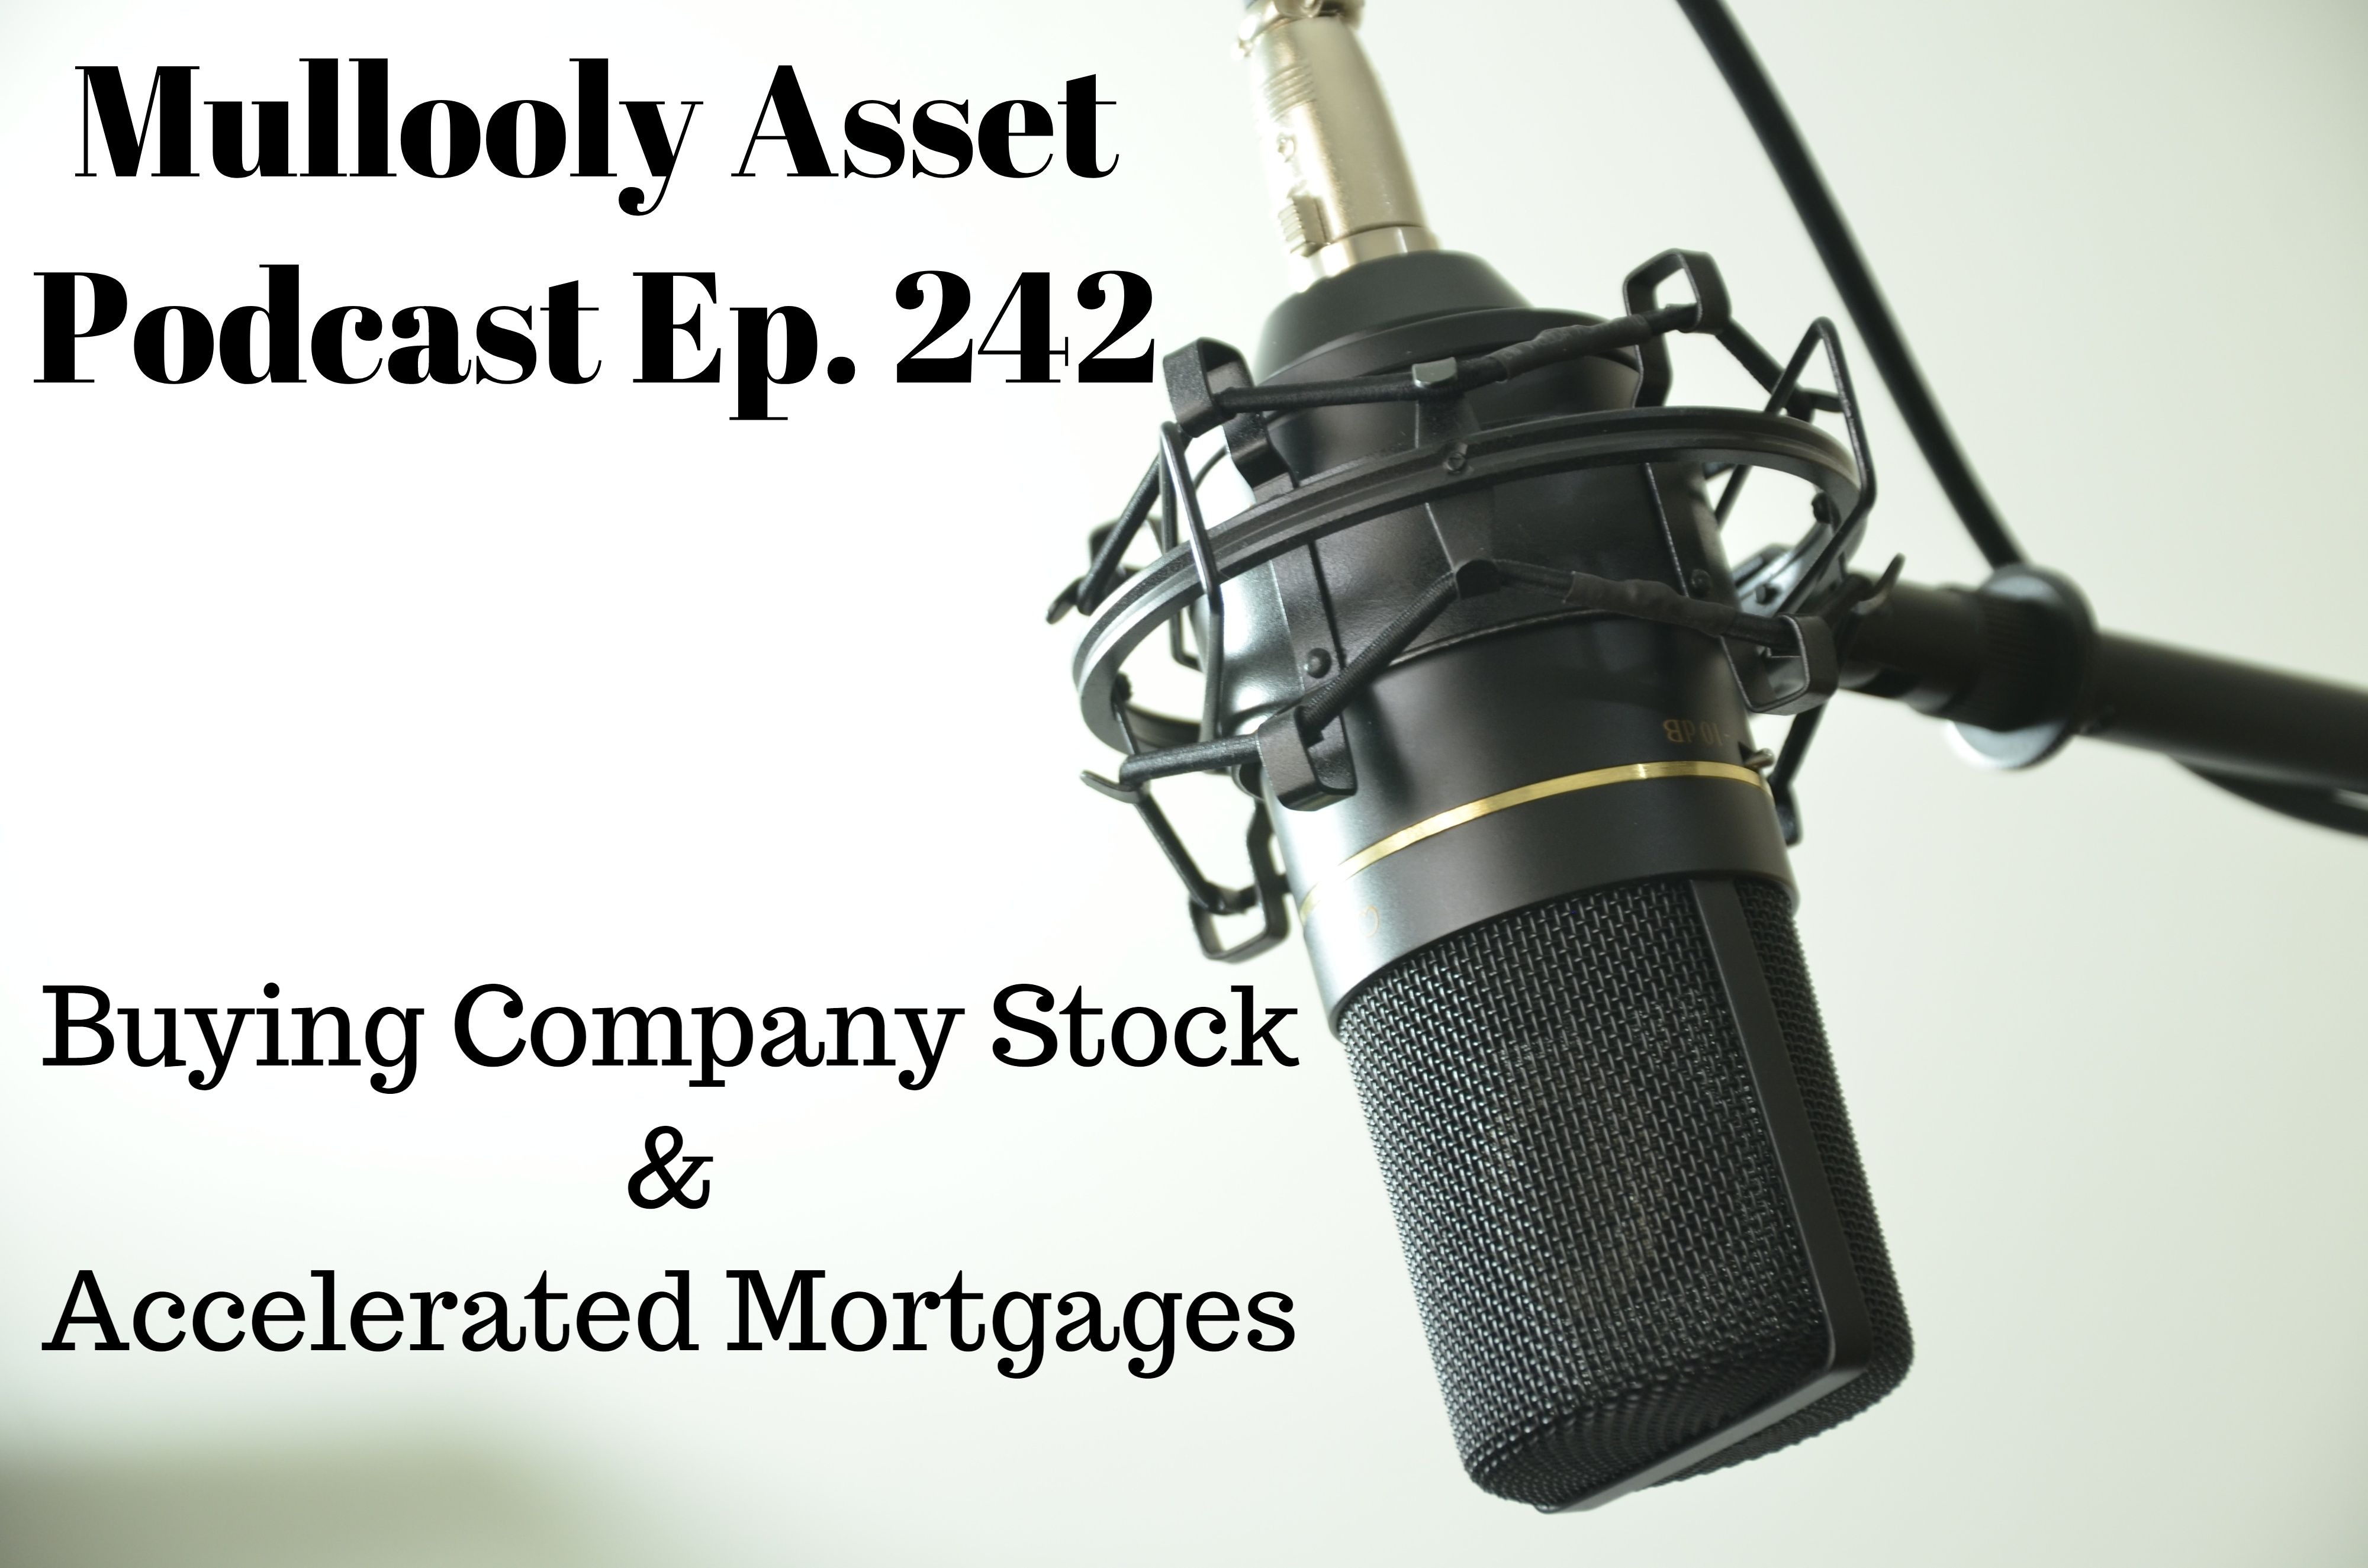 Ep. 242: Buying Company Stock & Accelerated Mortgages